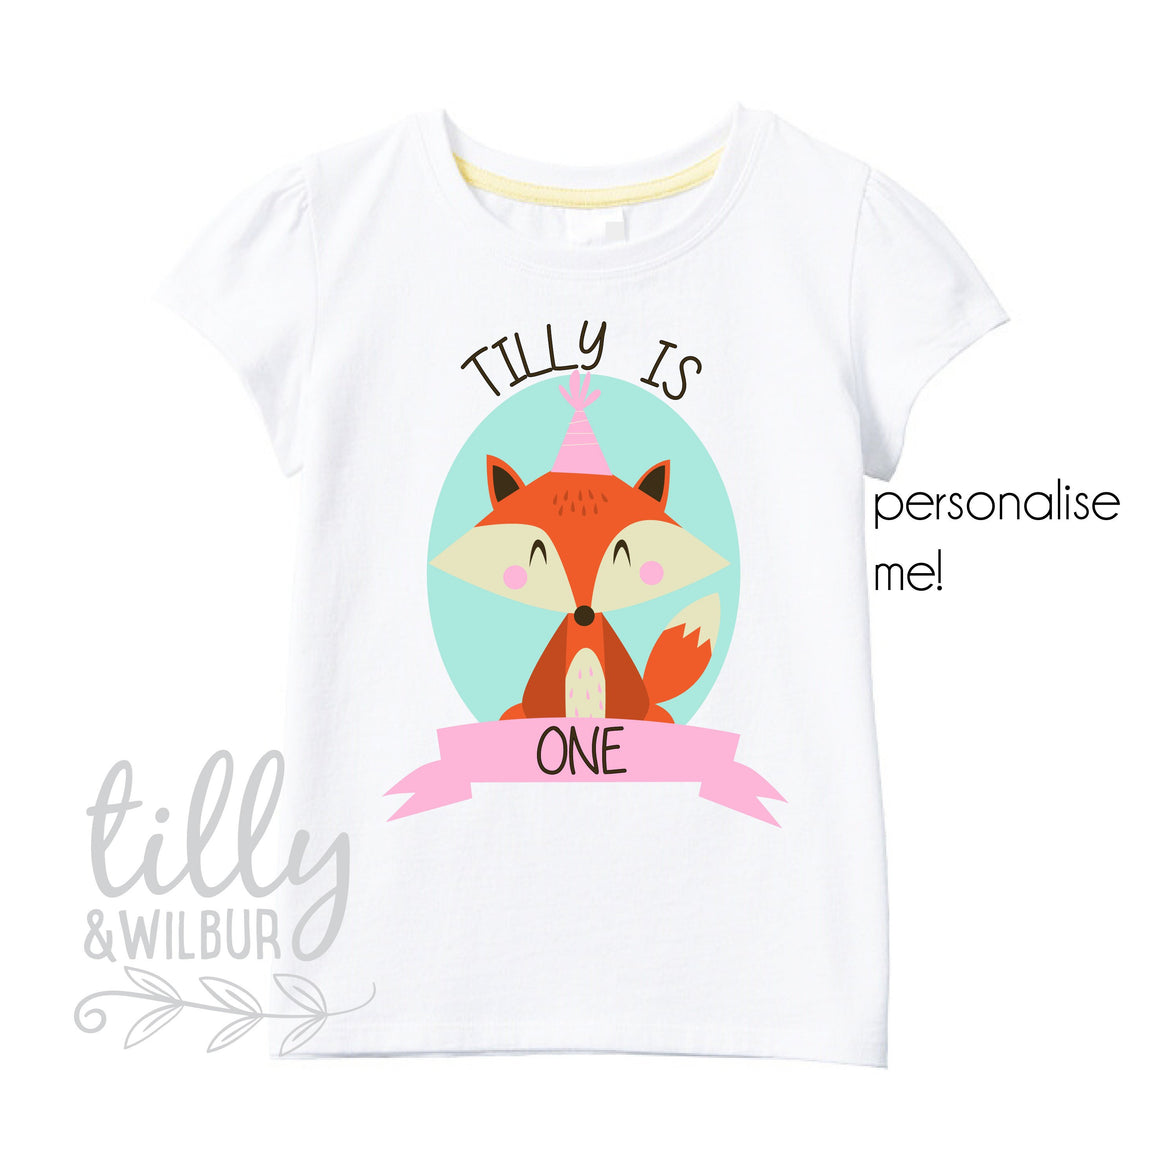 Personalised Girls One Birthday T-Shirt, Girls 1st Birthday Gift, First Birthday Tee, Pink And Mint Fox Design, Cake Smash Outfit